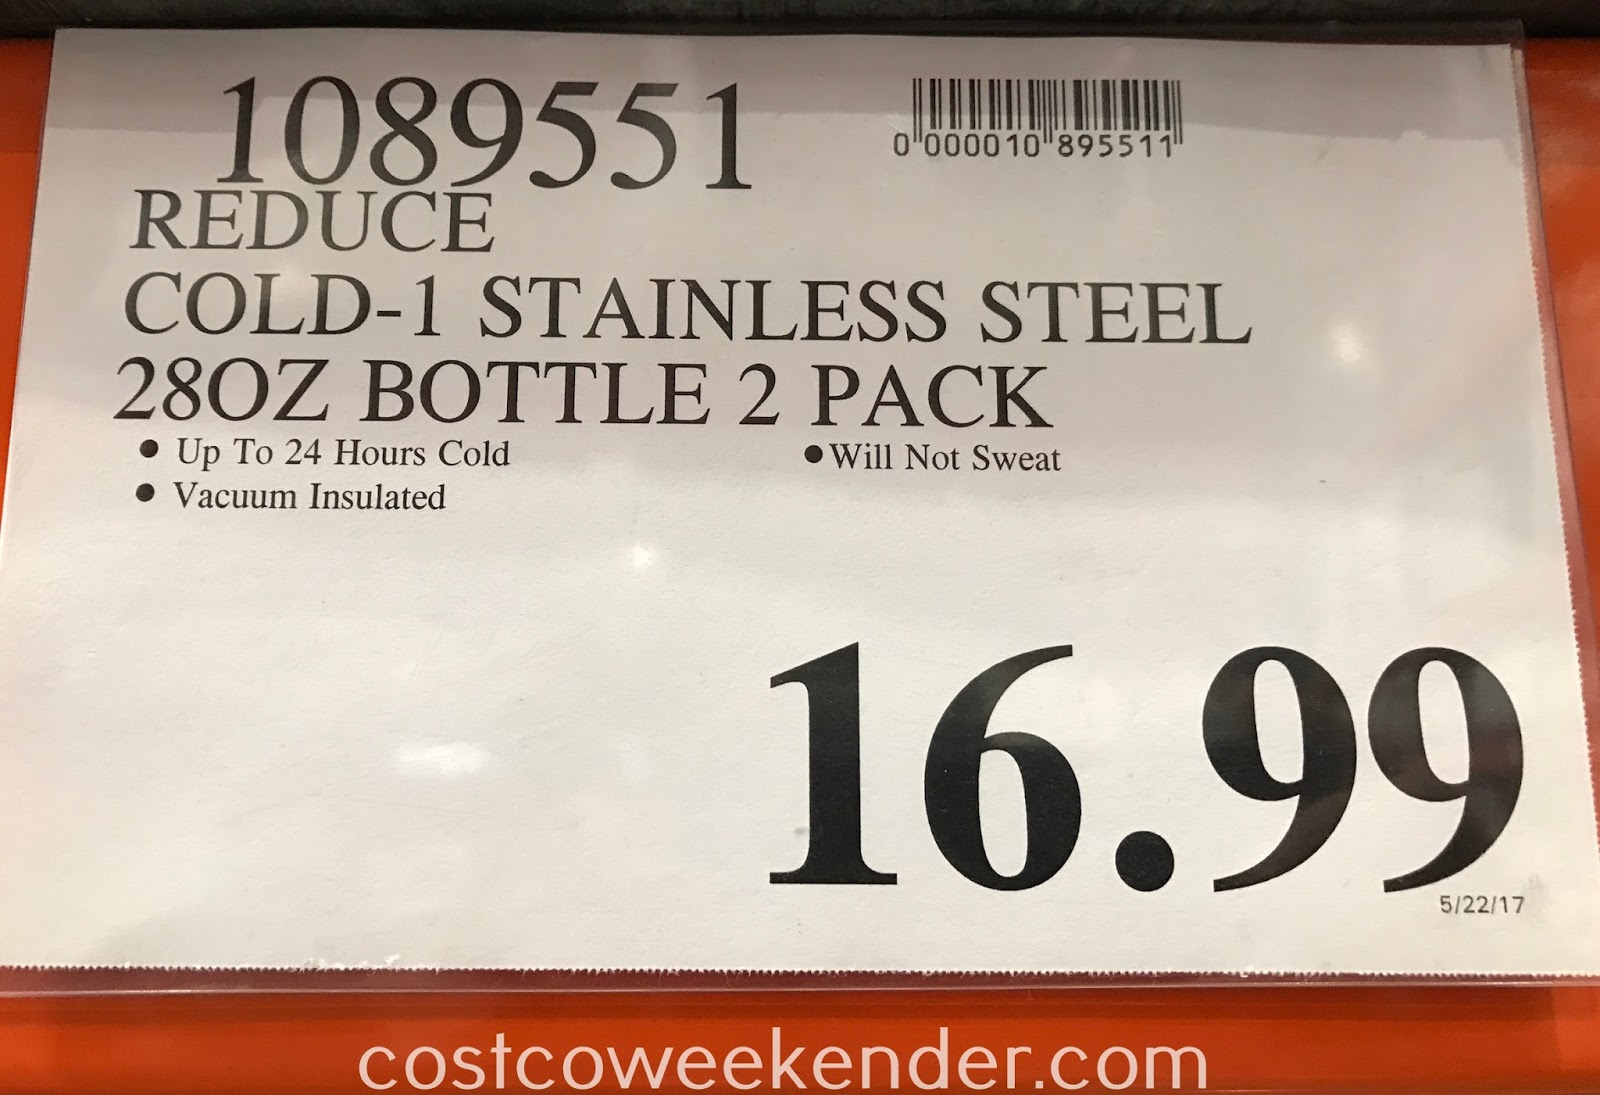 Deal for the Reduce Cold-1 Stainless Steel Insulated Bottle 2 pack at Costco